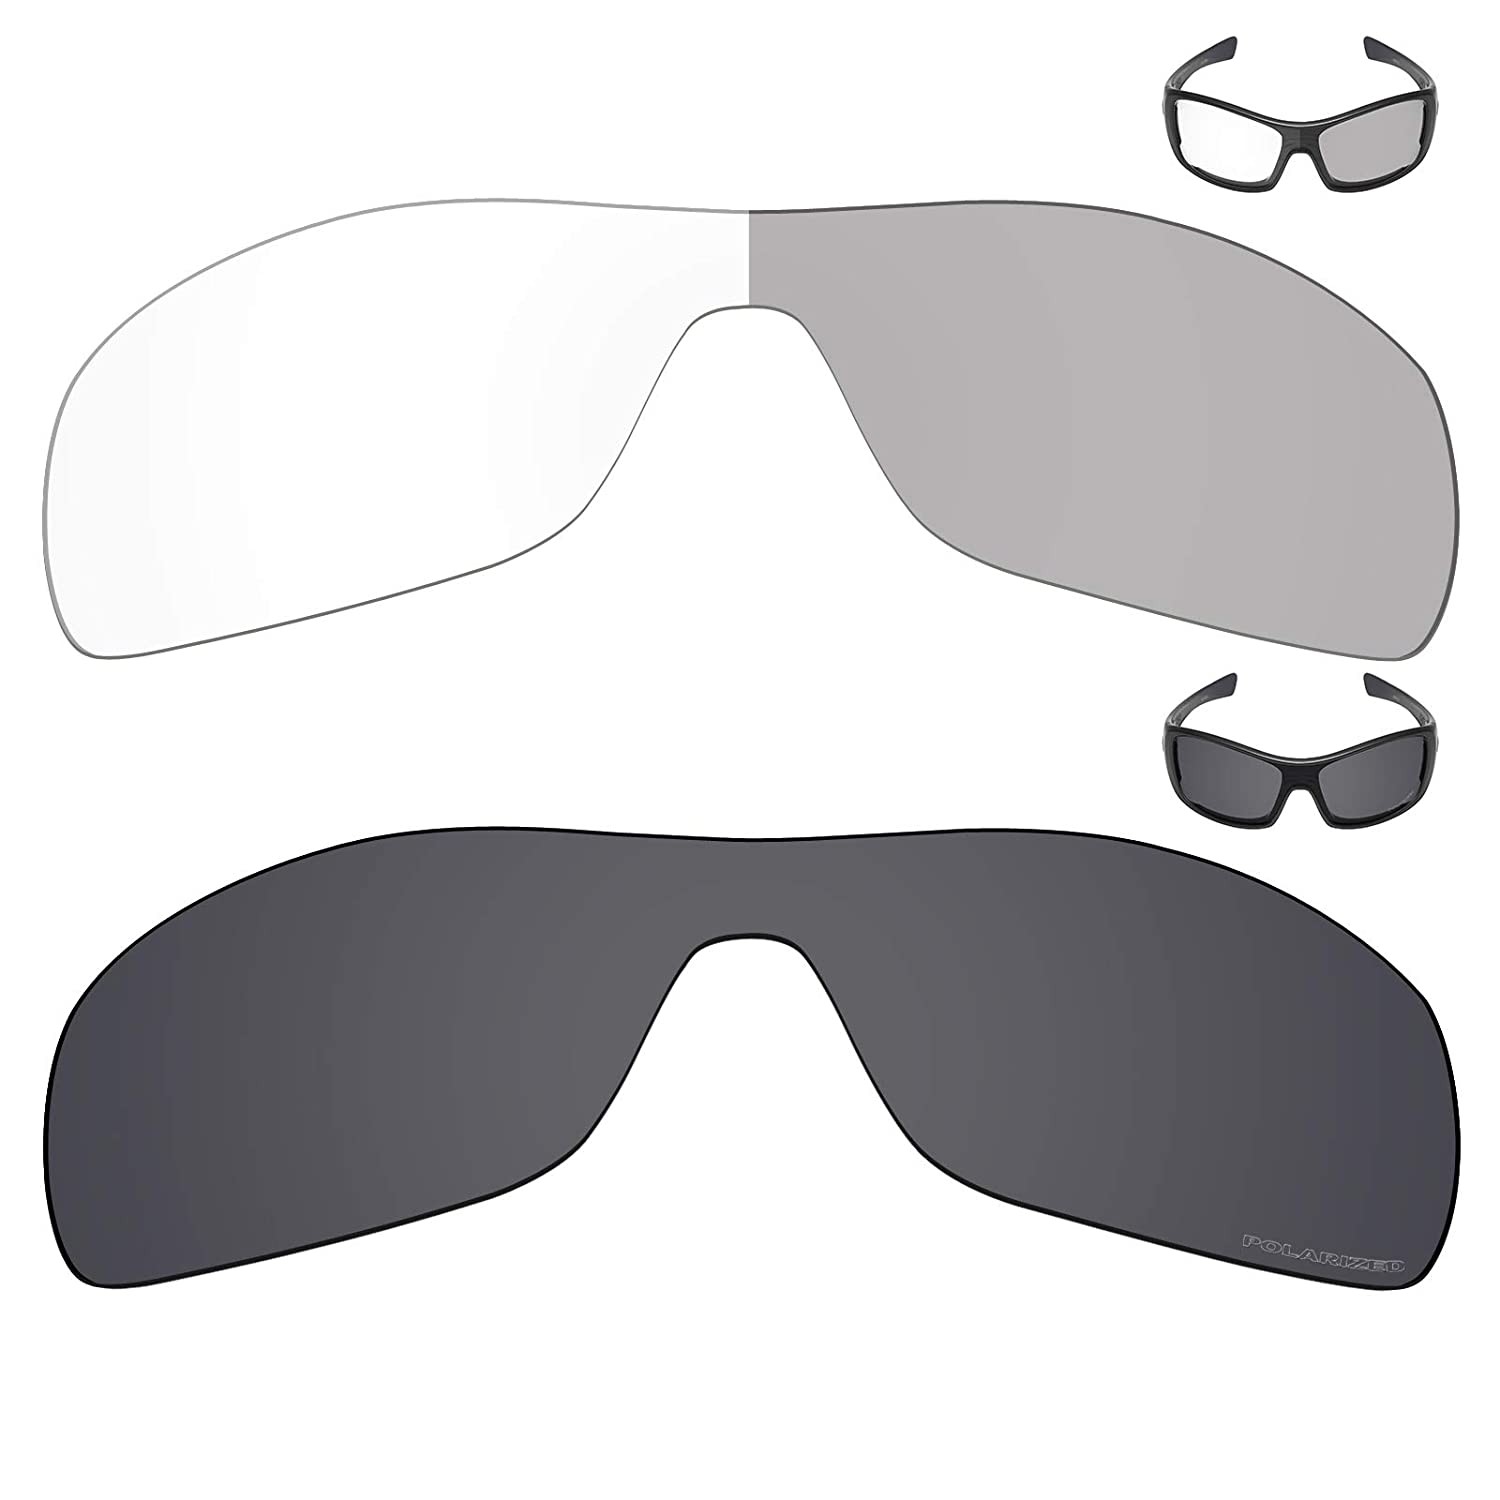 ef406b8723794 Amazon.com  Mryok+ 2 Pair Replacement Lenses for Oakley Antix Sunglass -  Eclipse Grey Photochromic Stealth Black  Sports   Outdoors